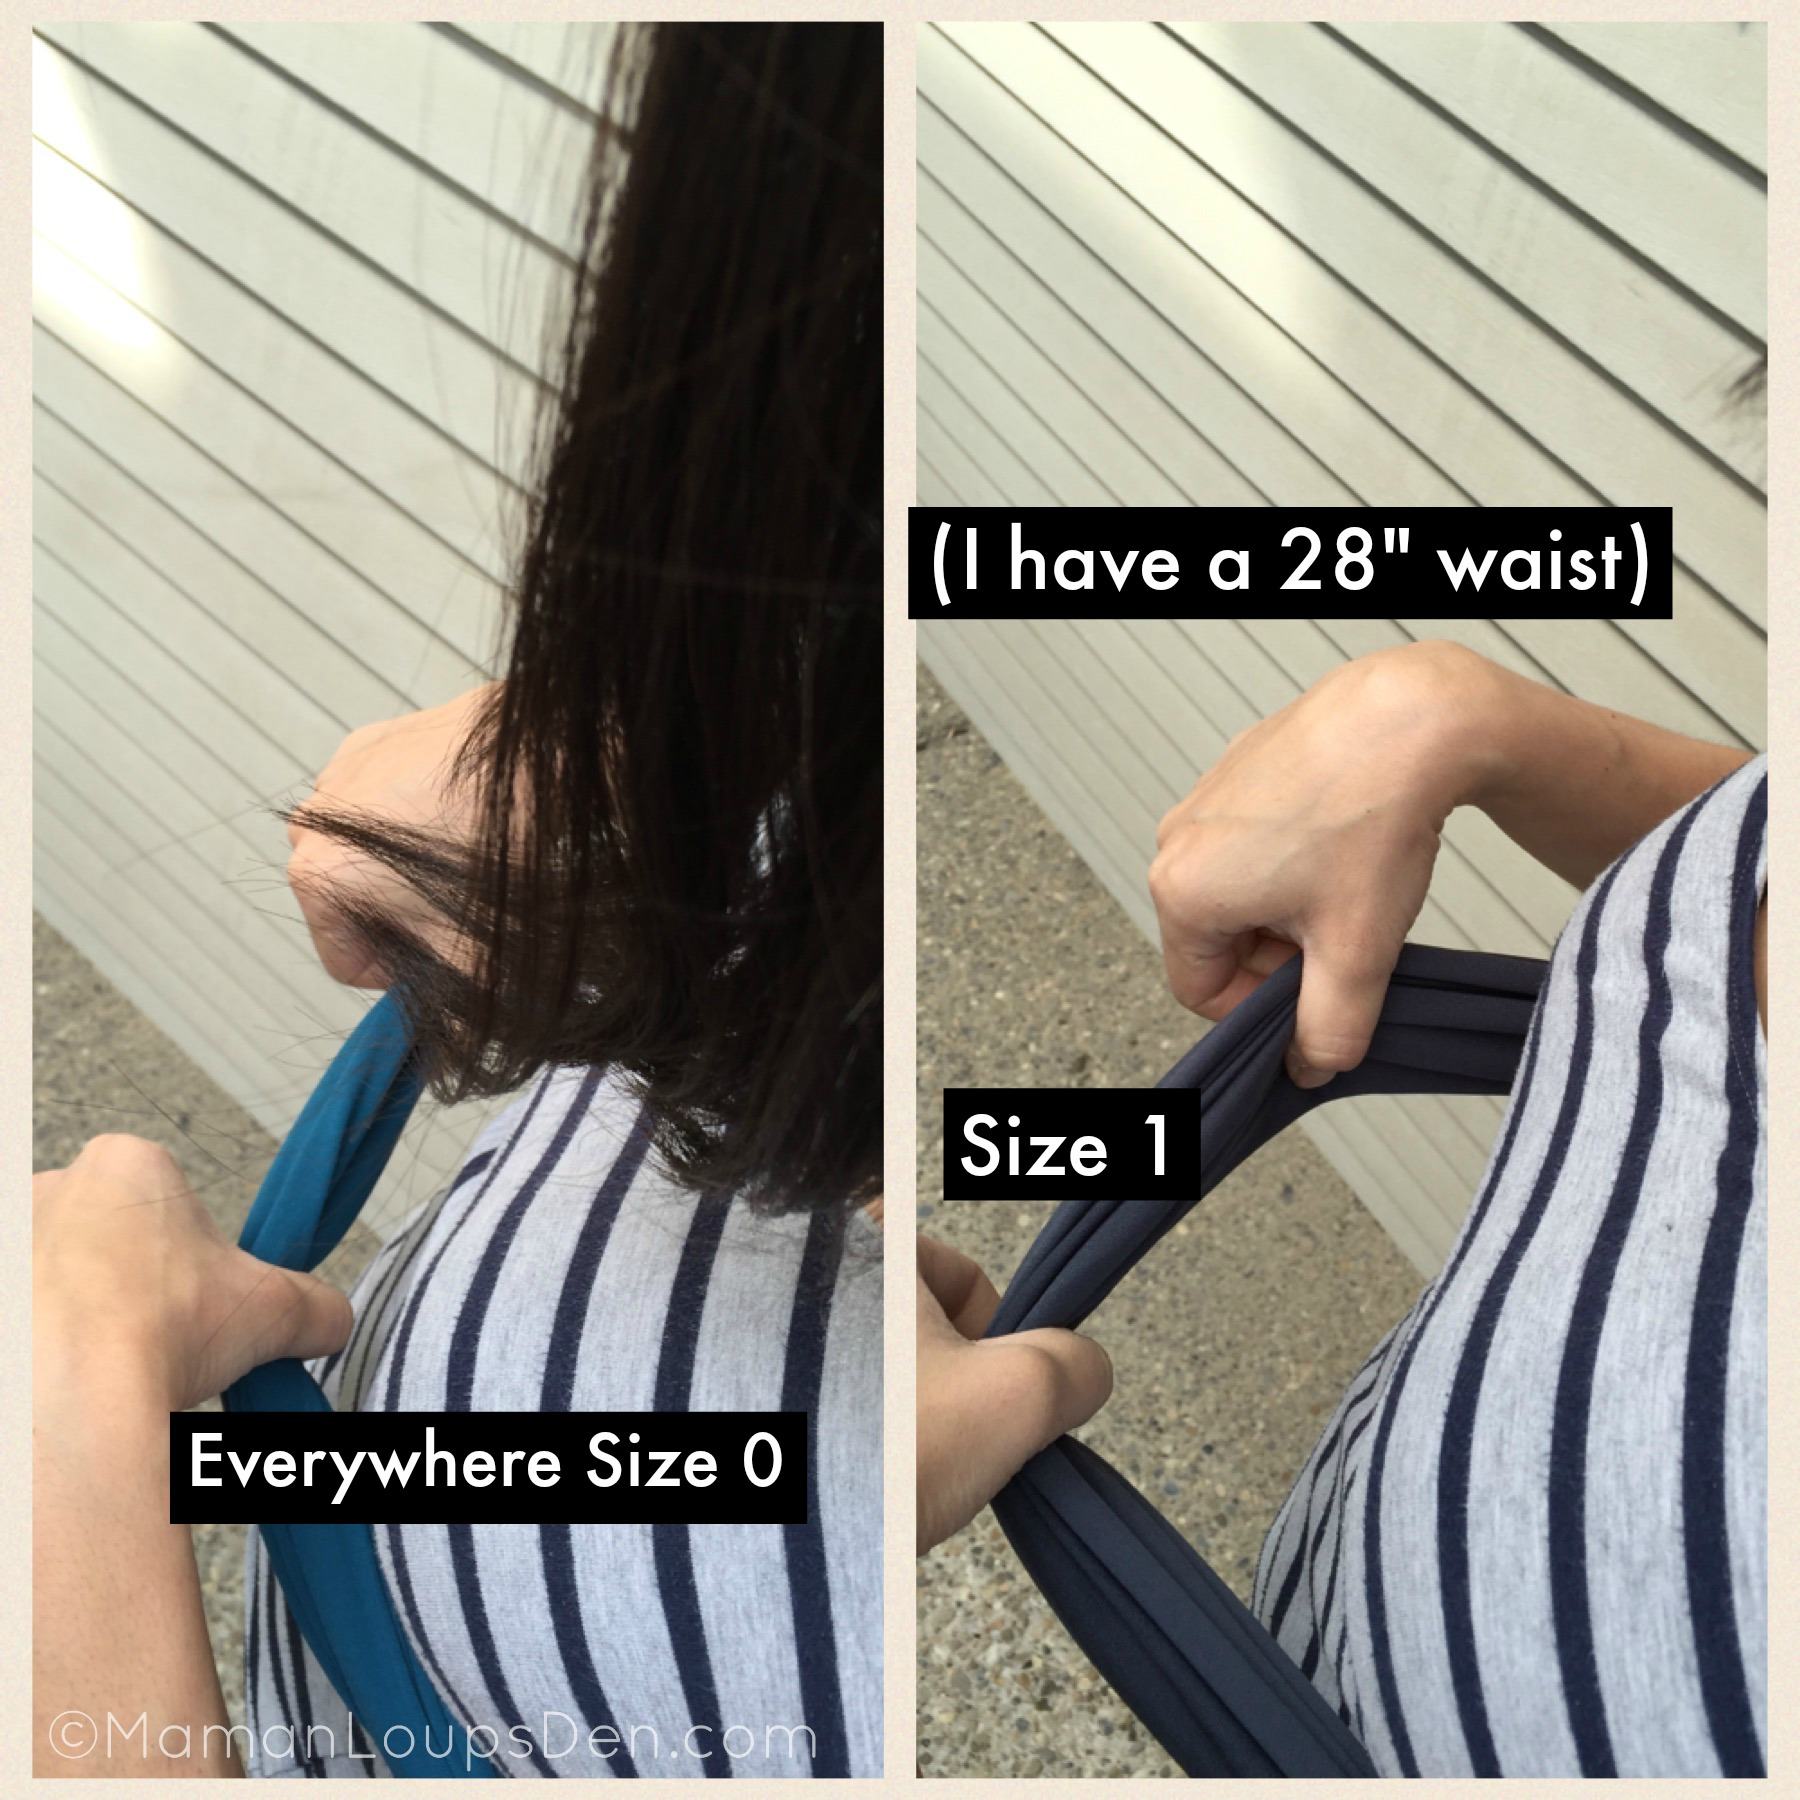 Everywhere Size 0 vs Size 1